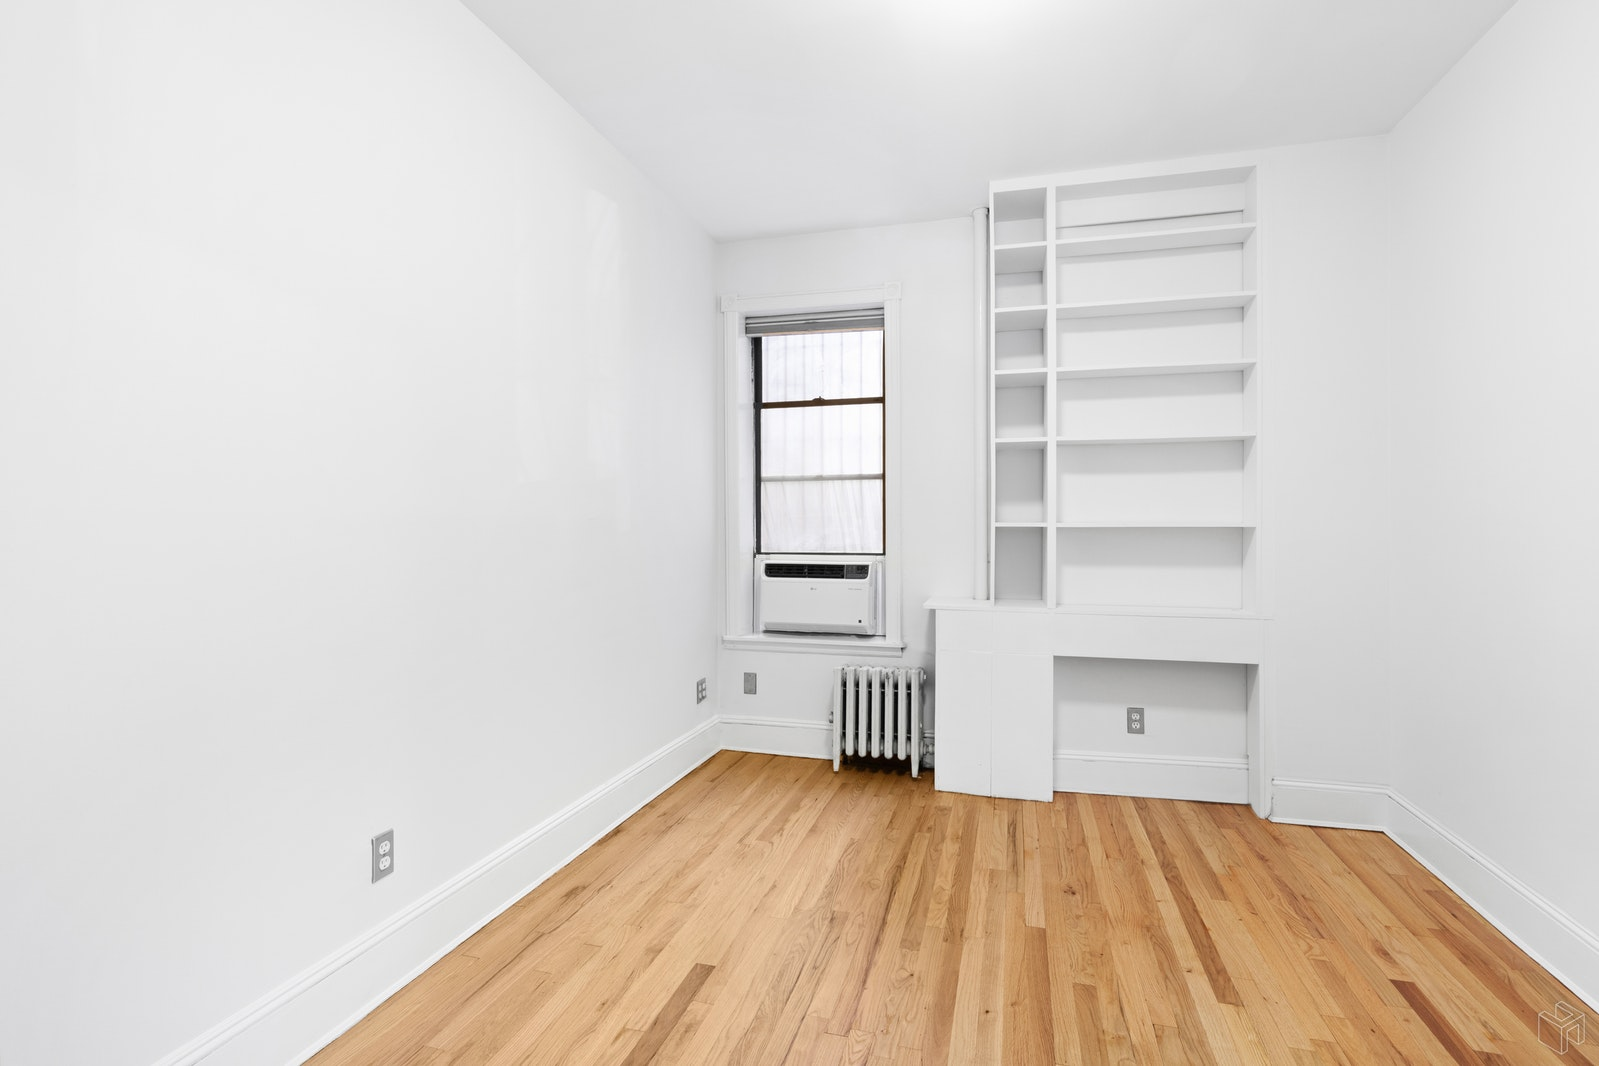 251 Pacific Street 2, Boerum Hill, Brooklyn, NY, 11201, $470,000, Sold Property, Halstead Real Estate, Photo 4